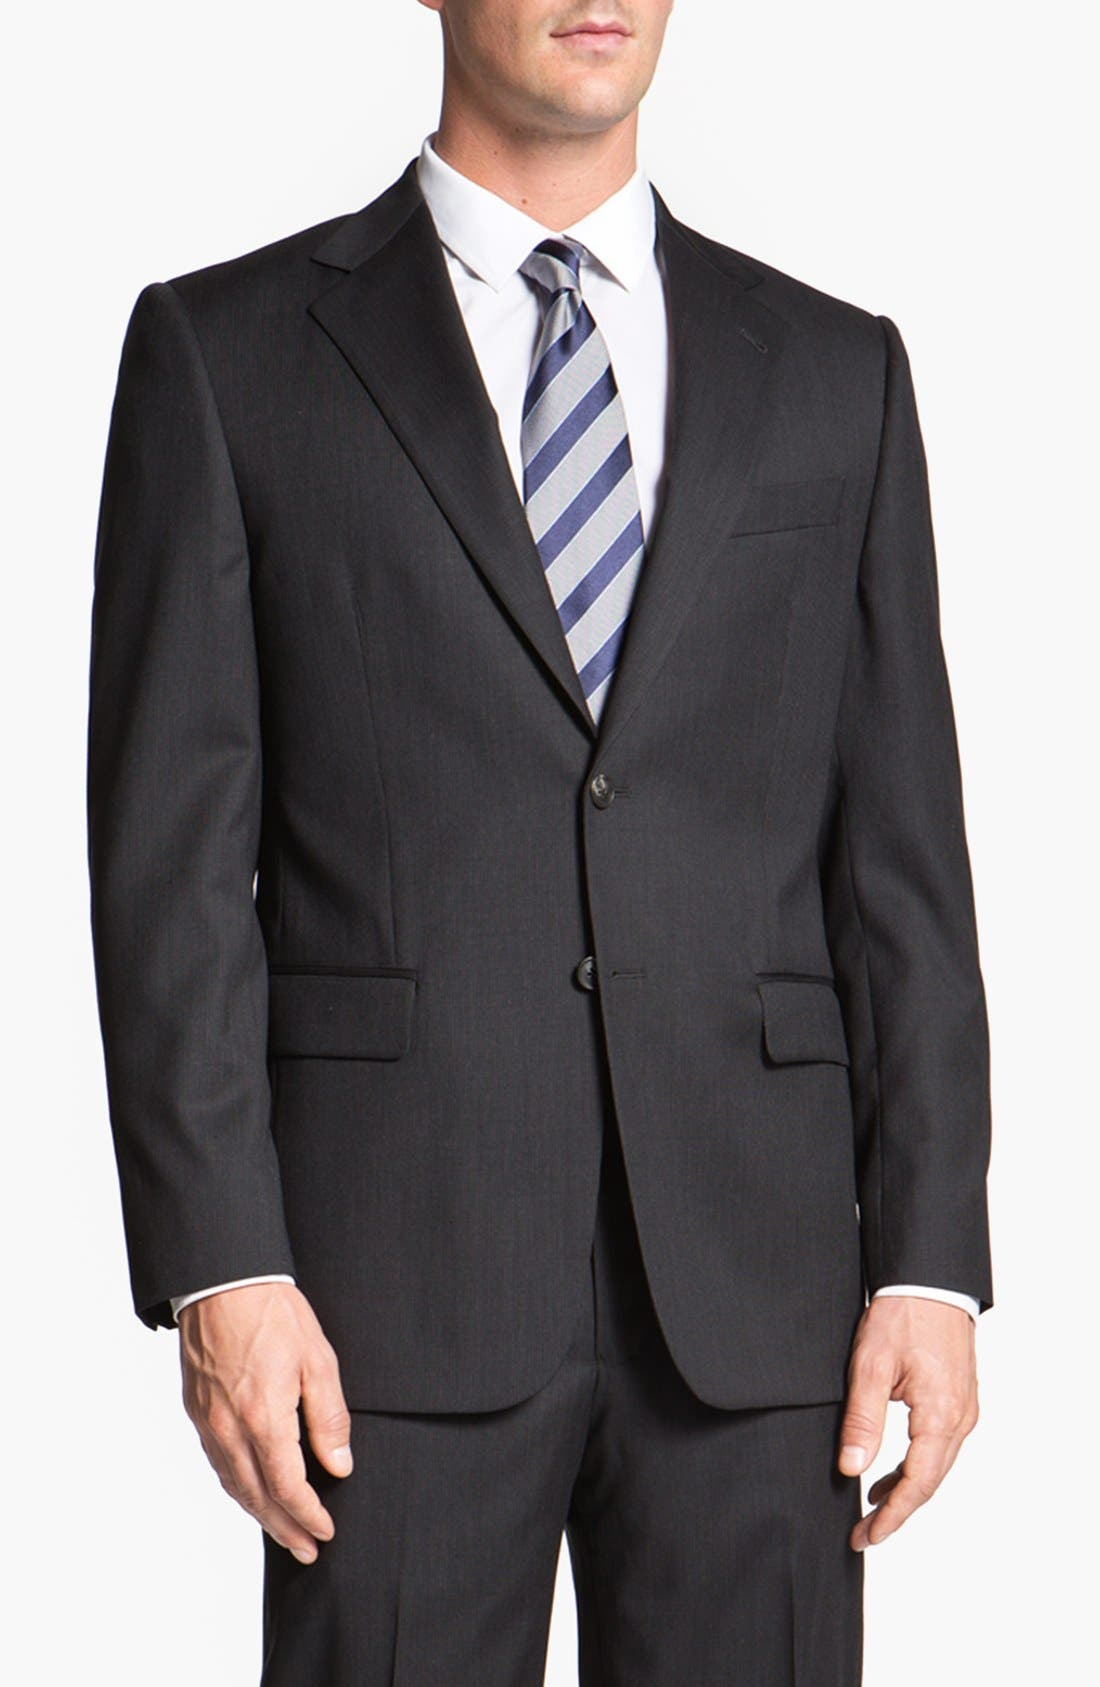 Main Image - Joseph Abboud 'Signature Silver' Stripe Wool Suit (Online Only)